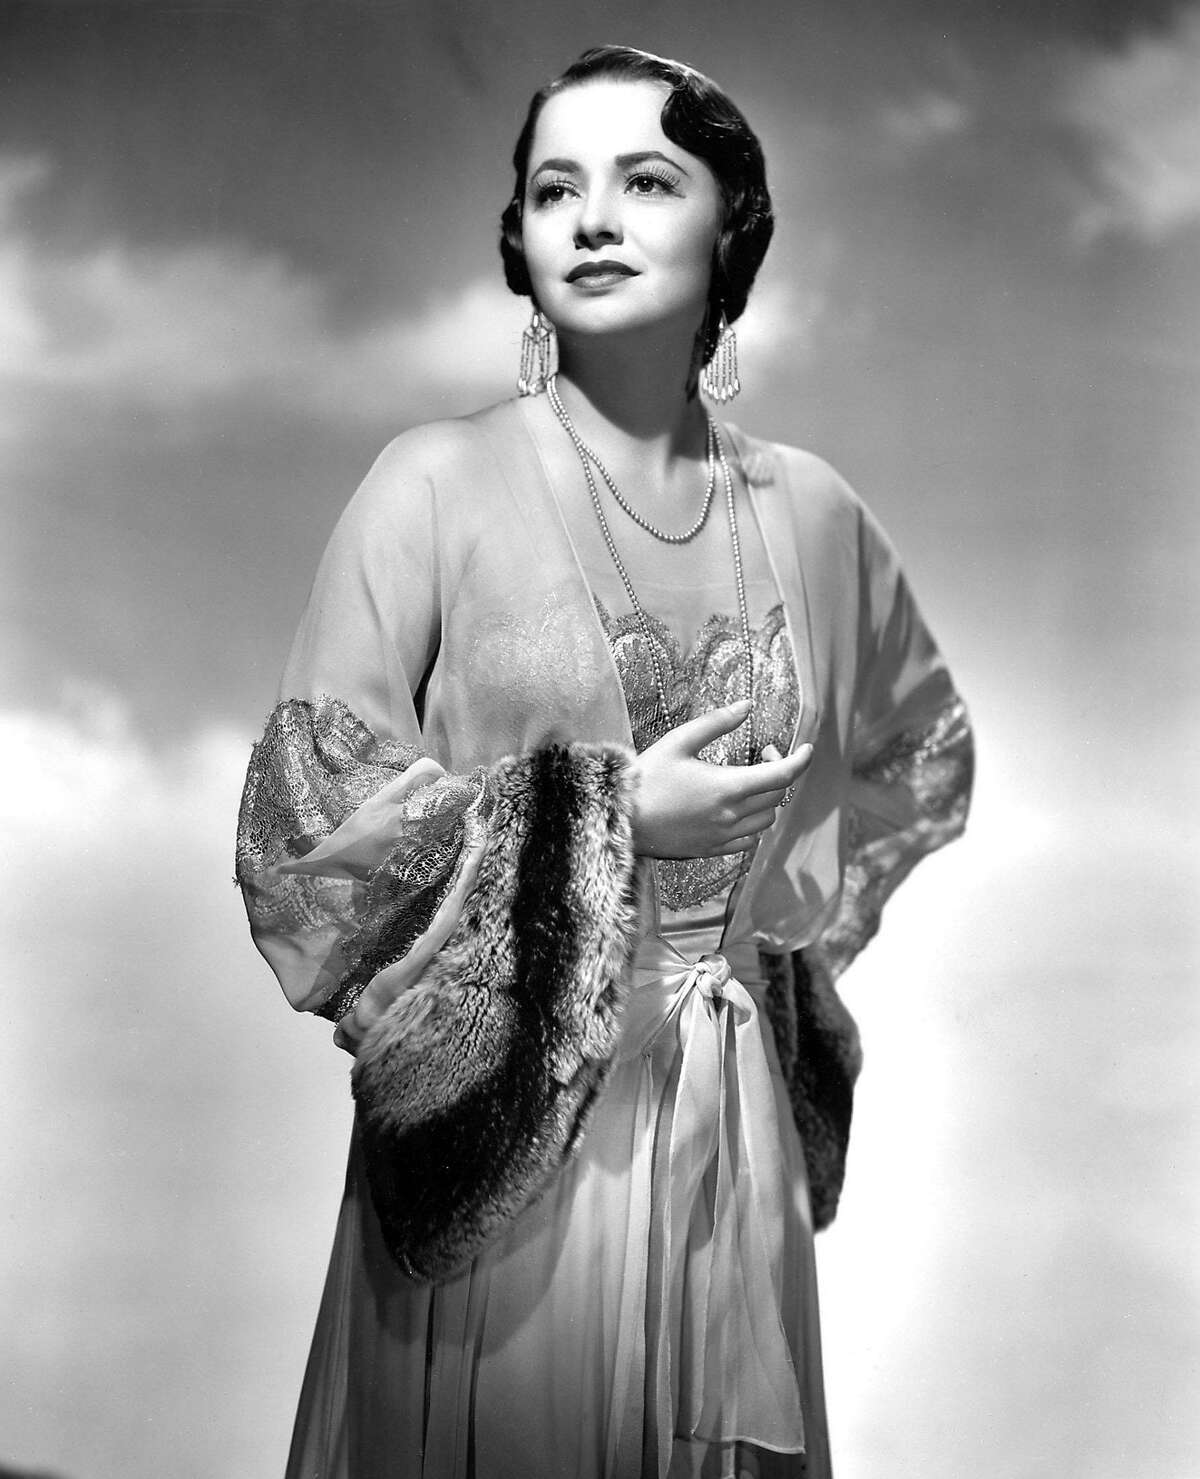 """Oscar-winning screen legend Olivia de Havilland, shown in this undated publicity photograph from her 1946 film """"To Each His Own,"""" for which she won her first Oscar, will be honored with a tribute on June 15, 2006, presented by the Academy of Motion Picture Arts and Sciences in Beverly Hills. The two-time Academy Award winner will travel from her home in France to Beverly Hills for the event, which will feature film clips of her most-admired performances and discussion with colleagues from throughout her career. BW ONLY NO SALES NO ARCHIVES FOR EDITORIAL USE ONLY REUTERS/AMAPA/Handout"""